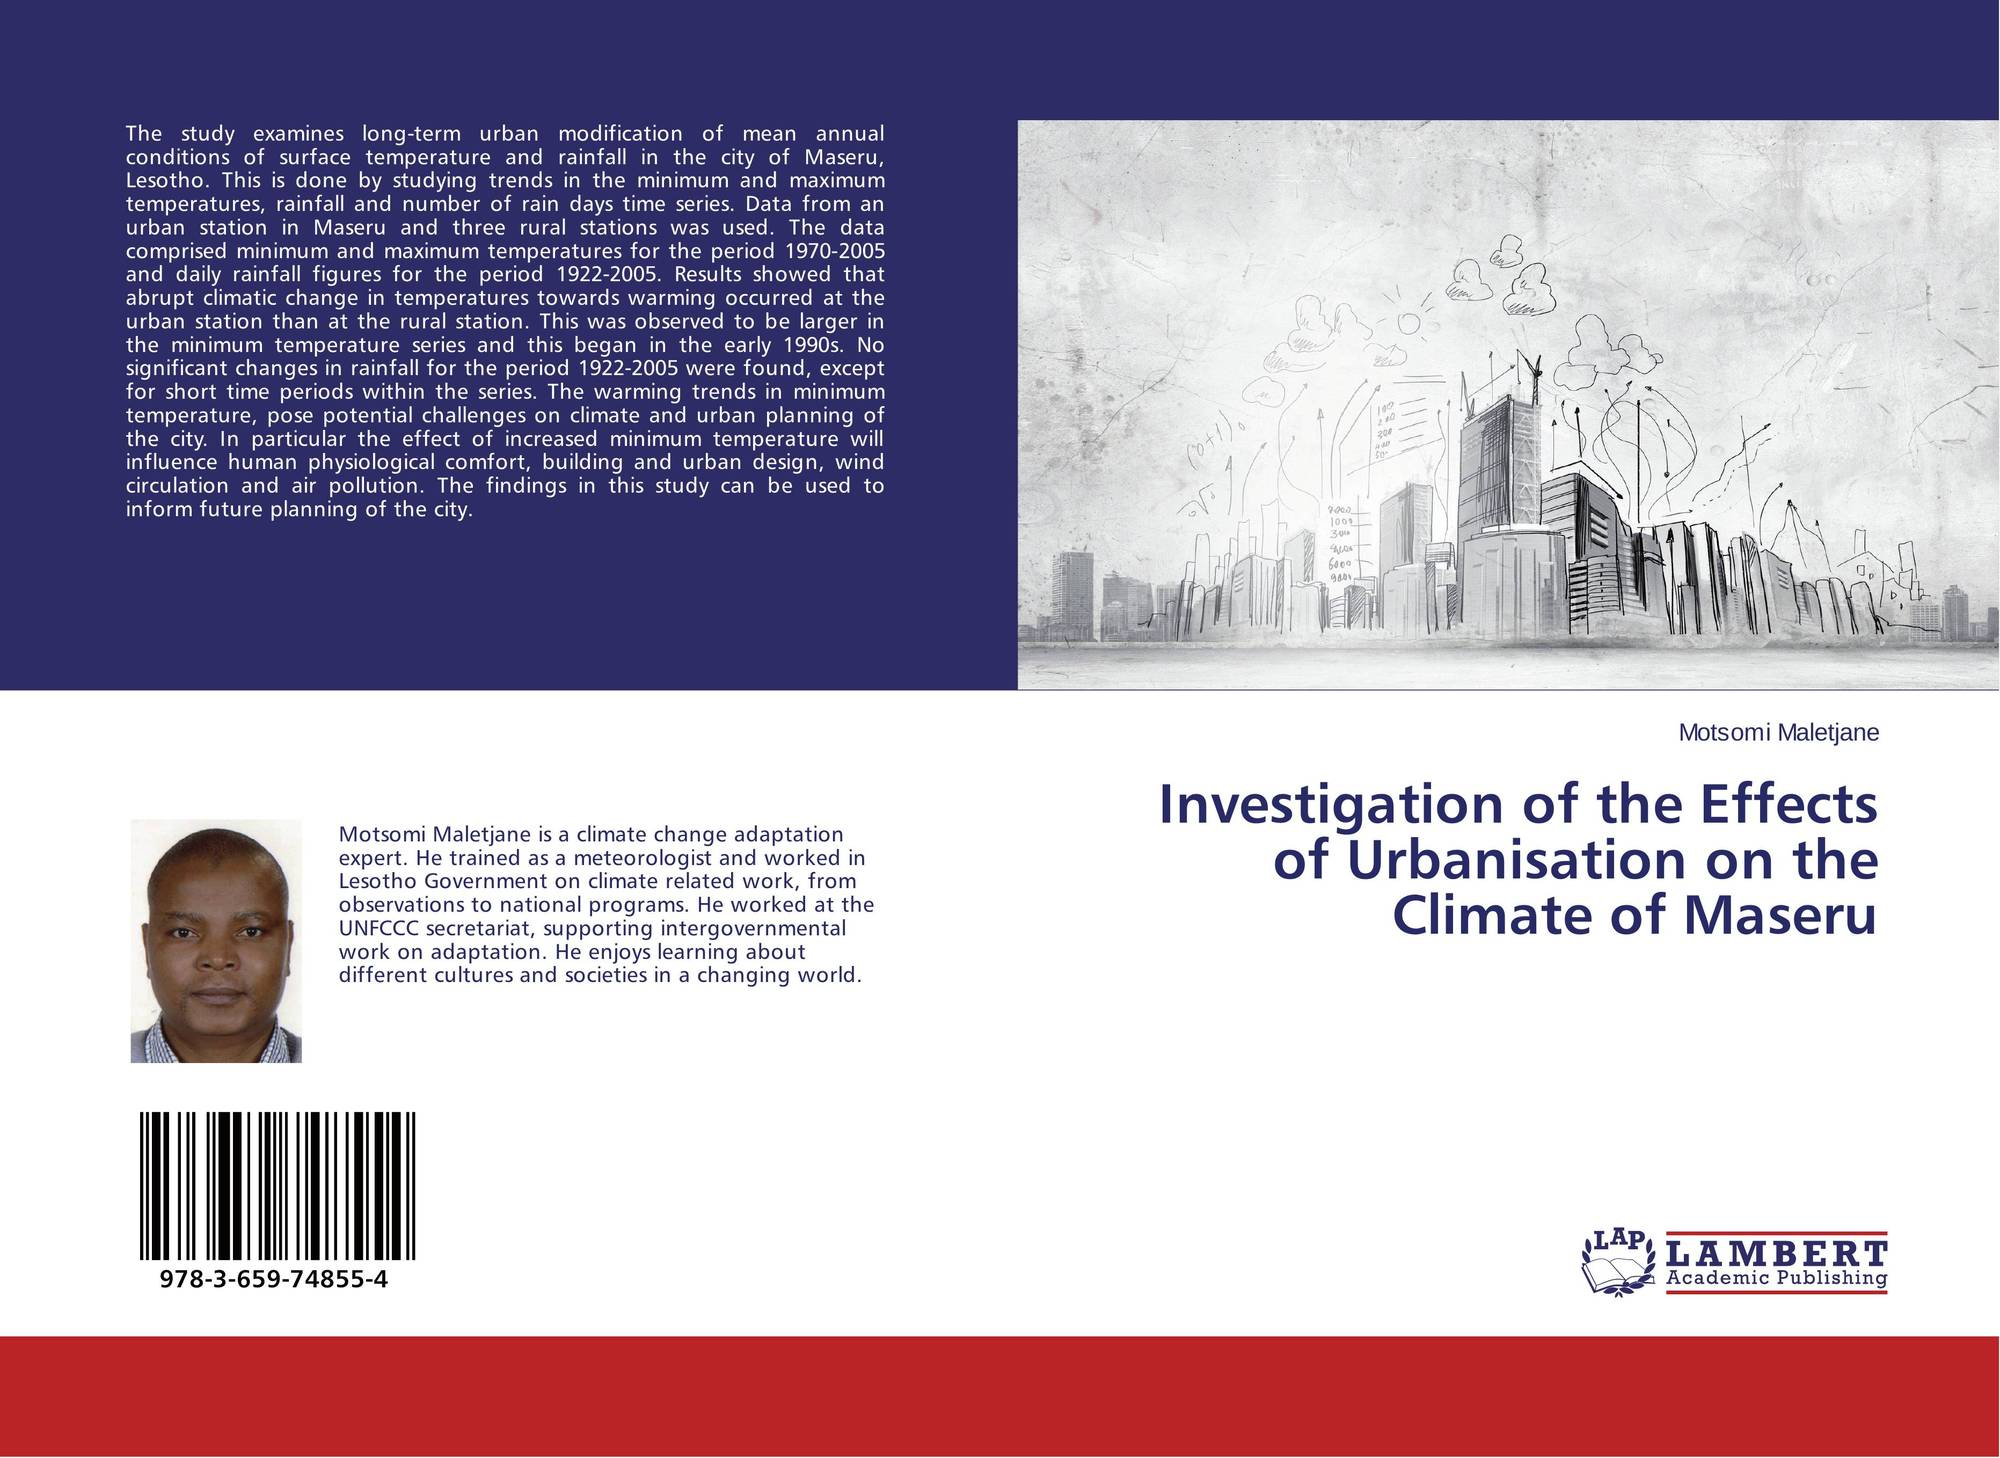 affect of urbanization on climate Climate change is a serious challenge for cities around the world, particularly in developing countries where urbanization is happening at neck- breaking speed it threatens to increase vulnerabilities, destroy economic gains, and hinder social and economic development.